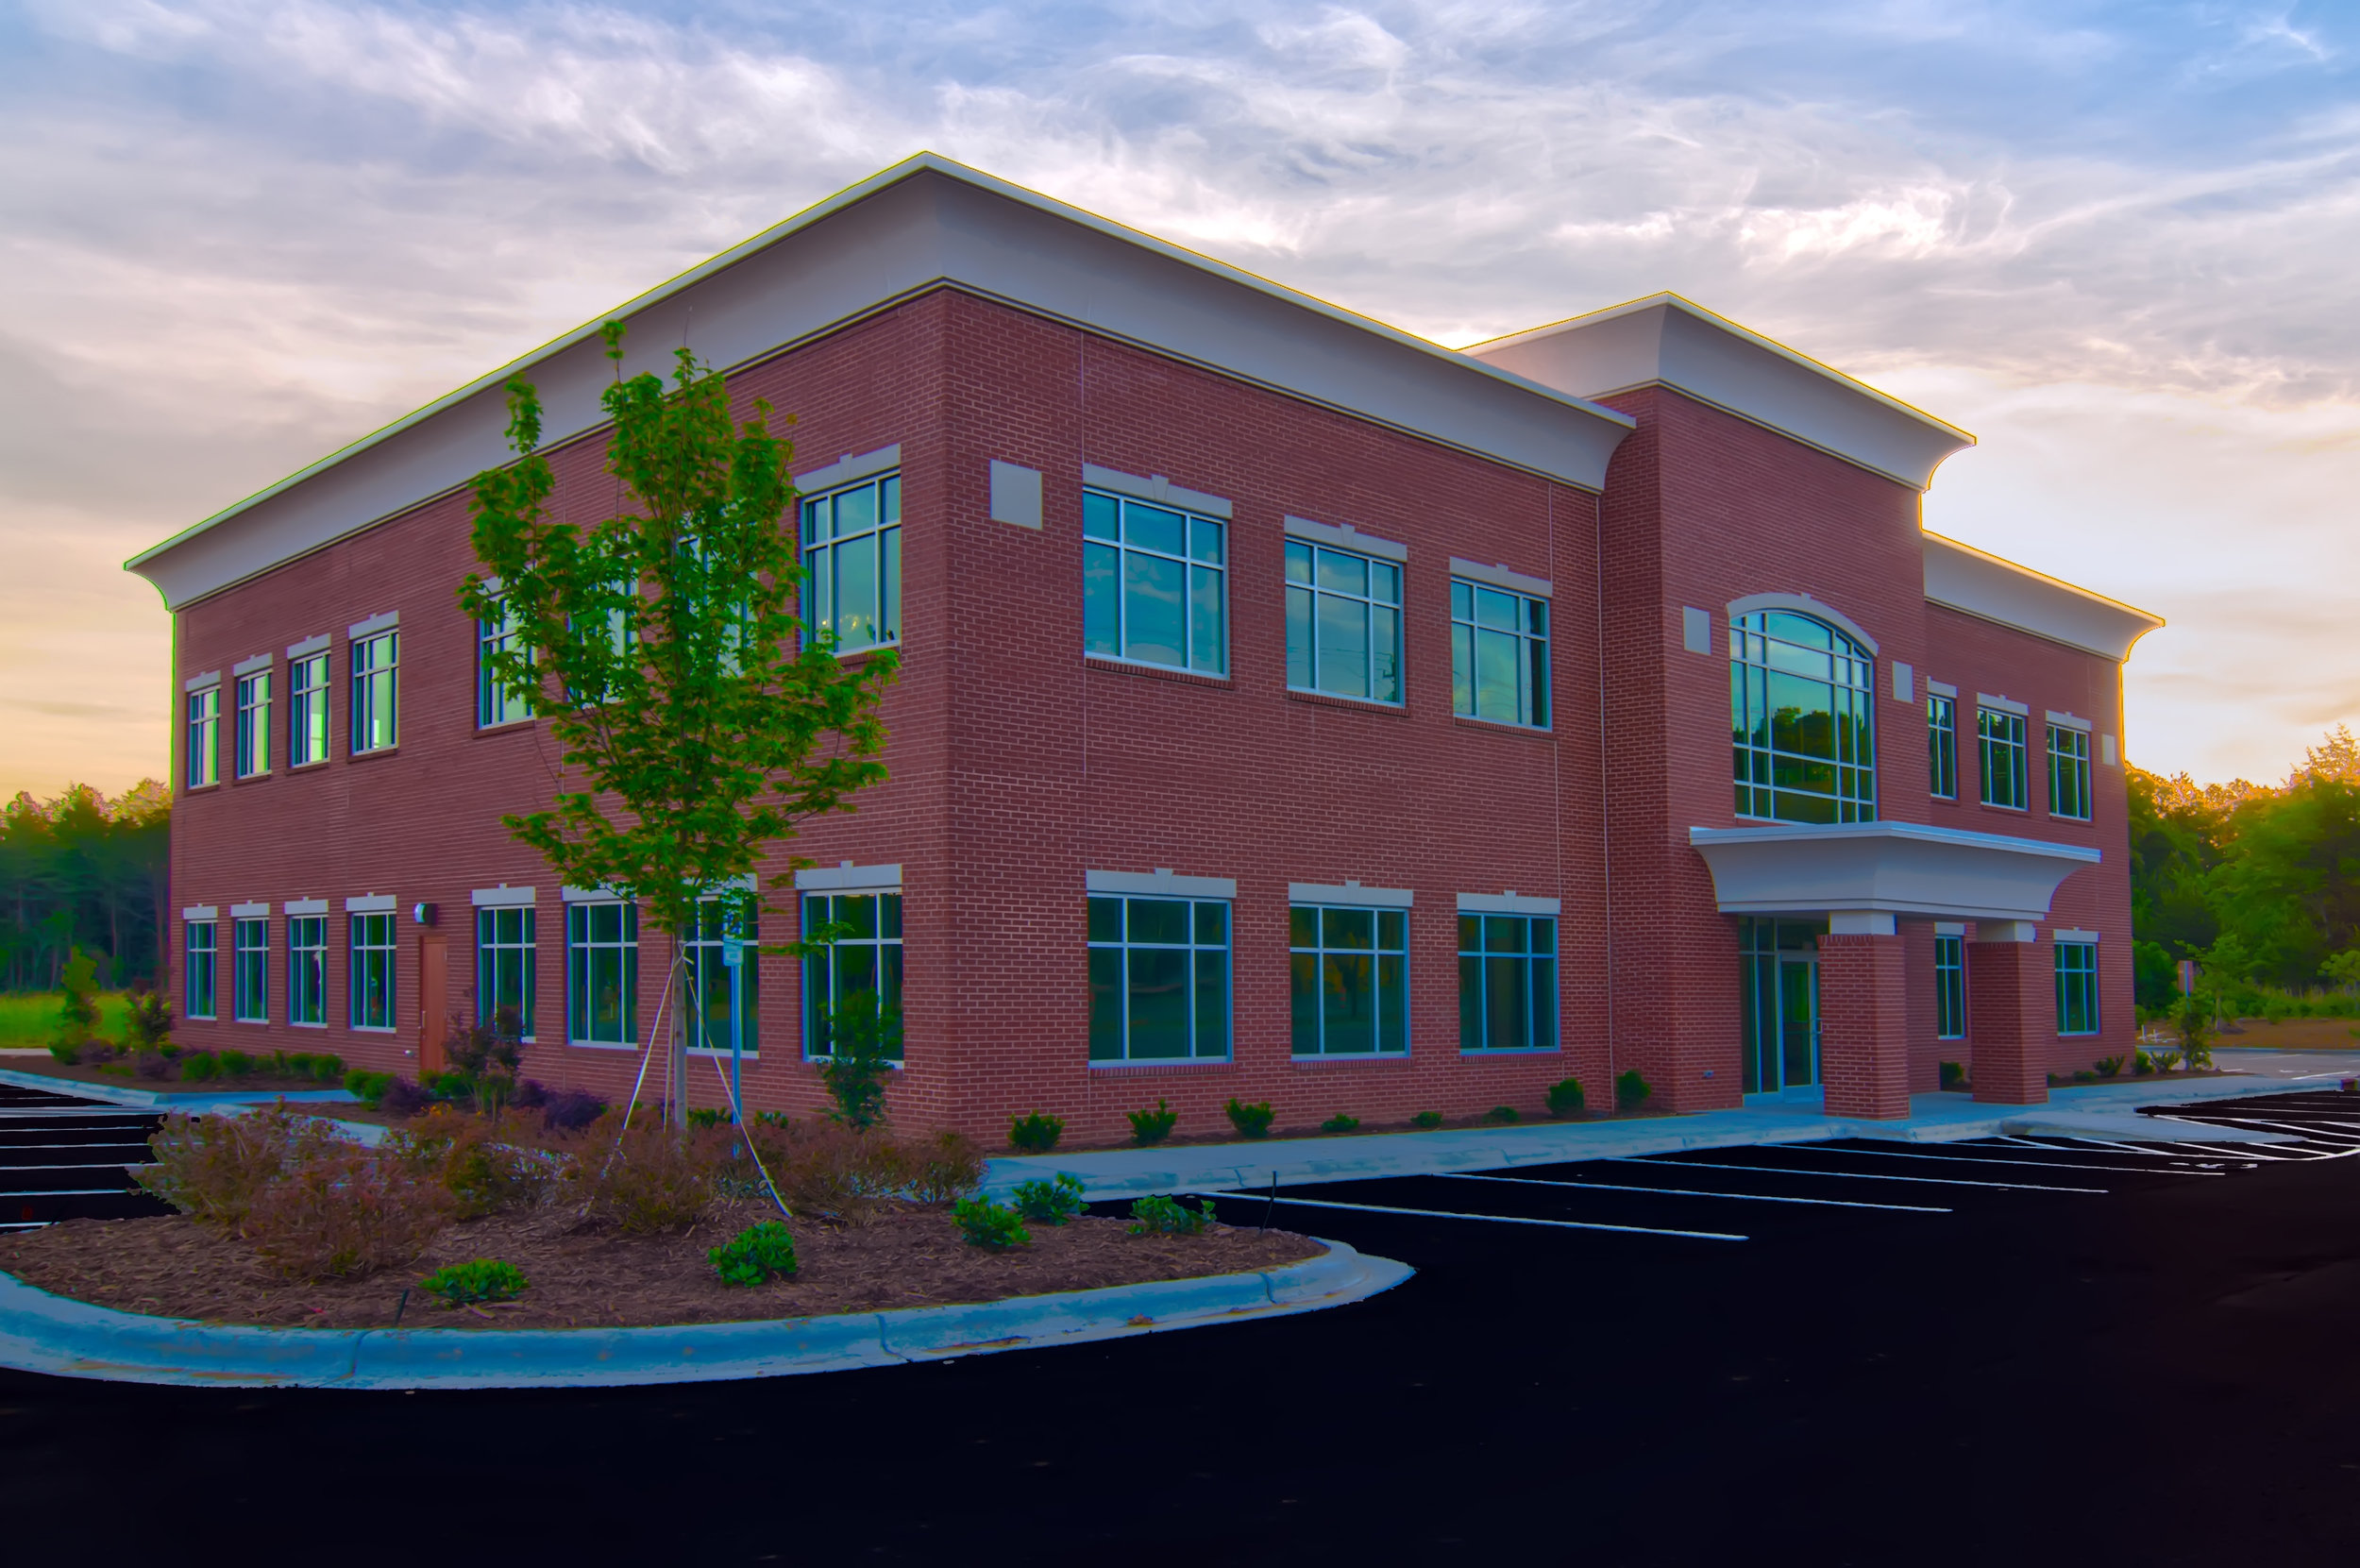 Harrisburg Medical Building is located near the intersection of I-485 and Rocky River Road.